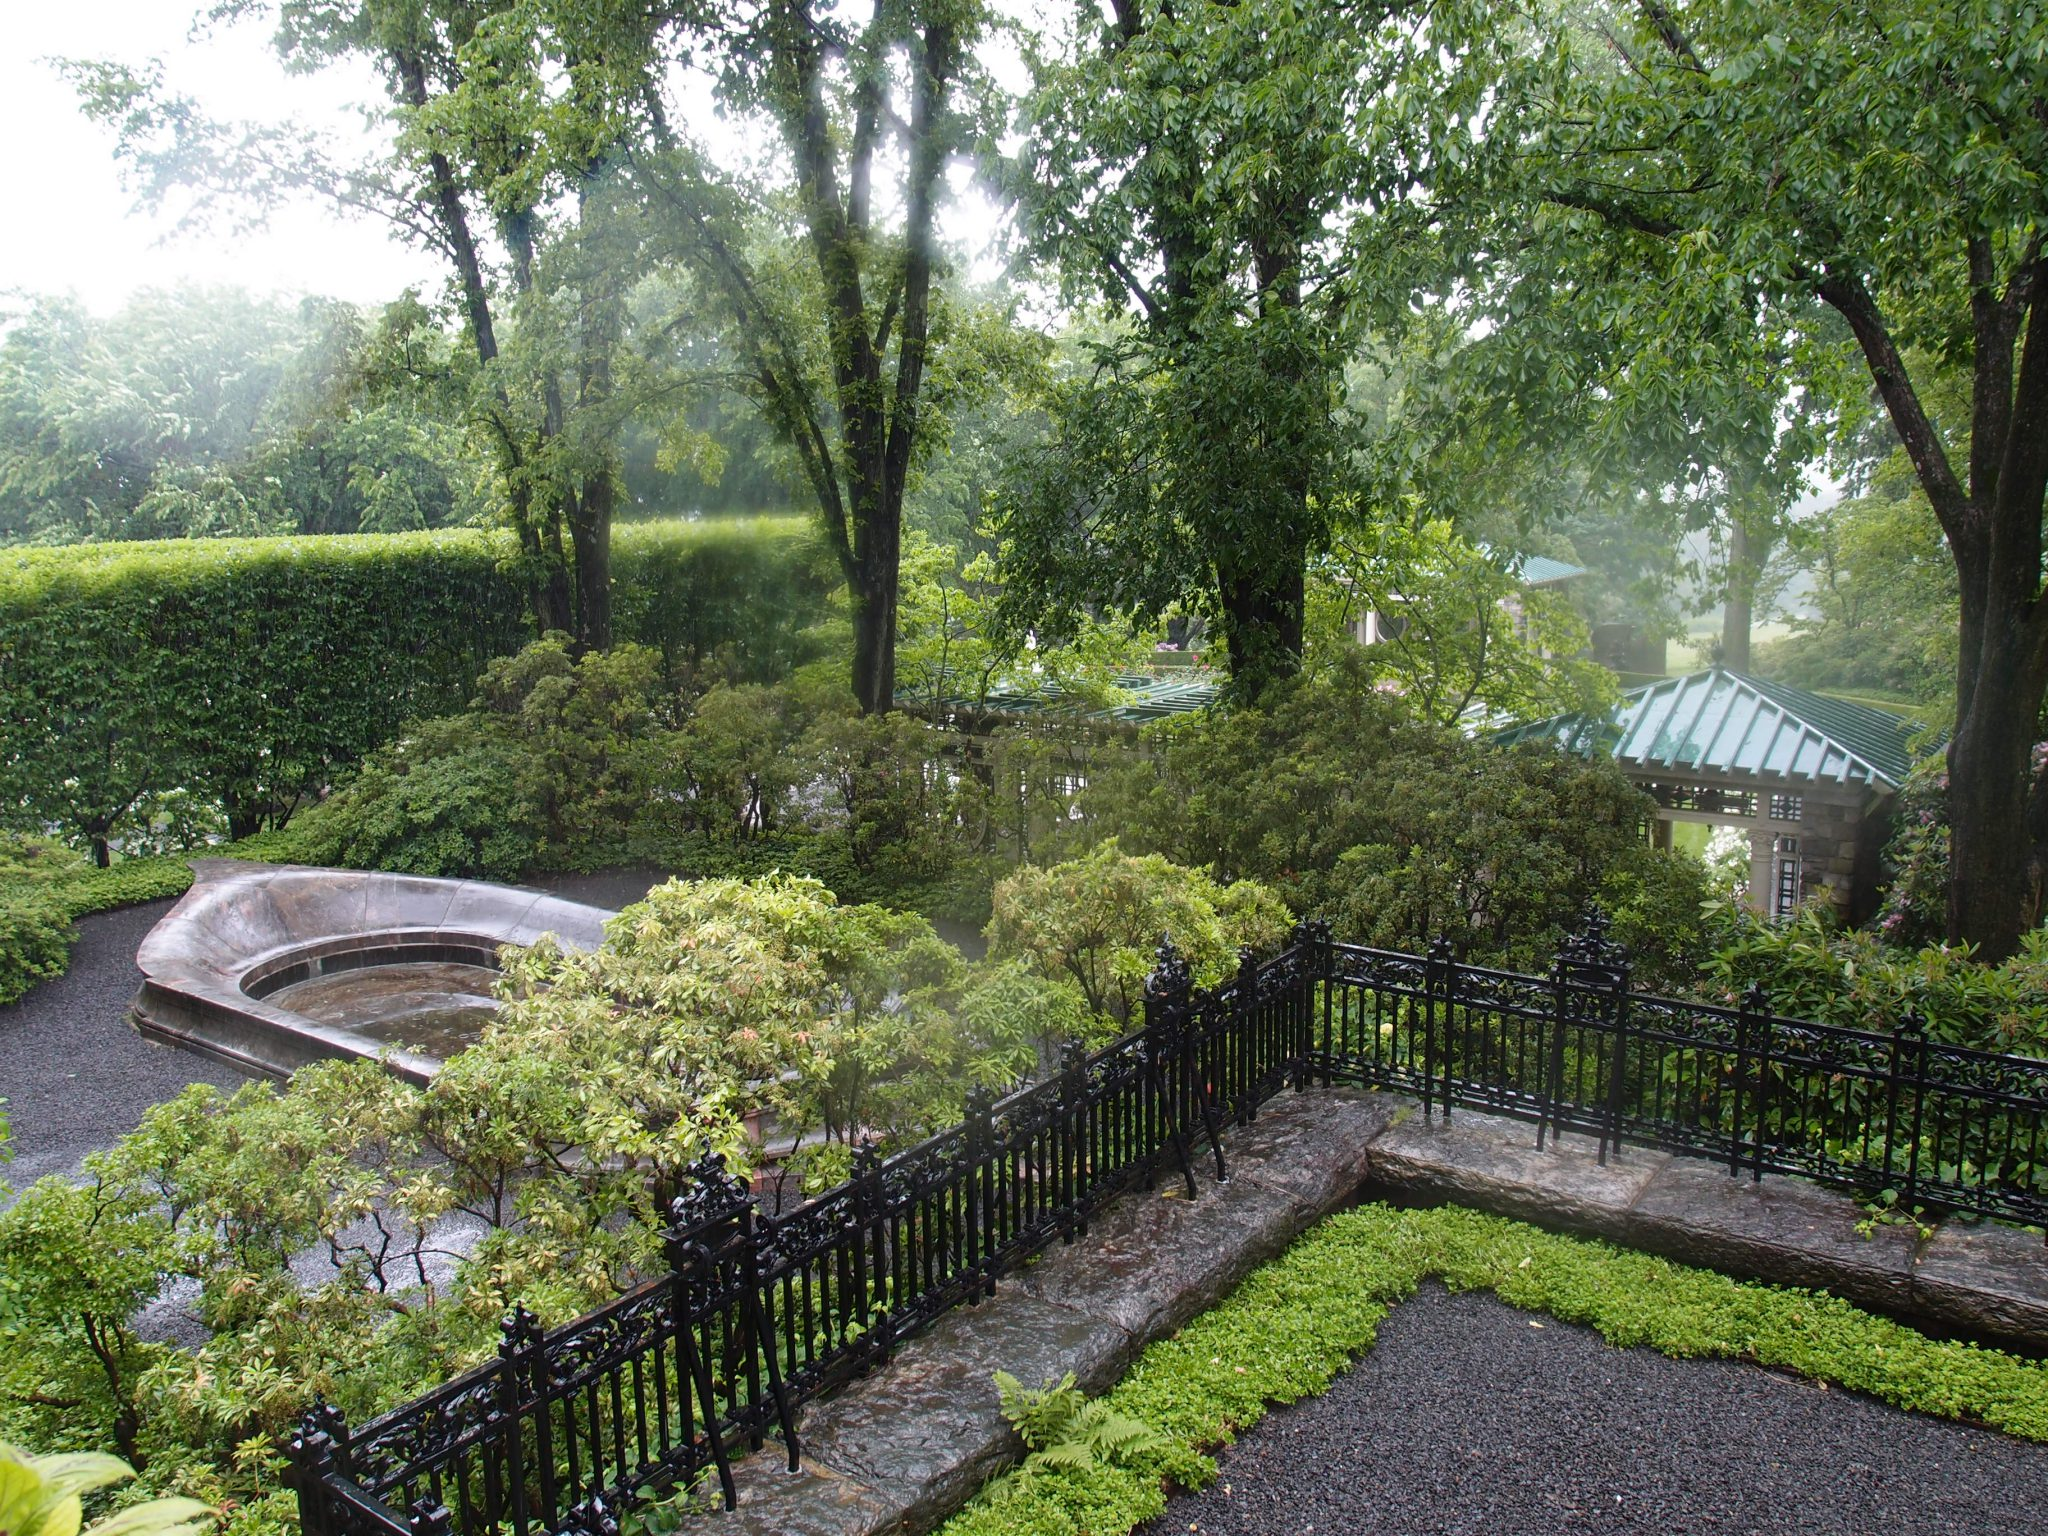 On the northeast corner of the West Porch: a view of the green roofs of the gazebos in the Rose Garden.